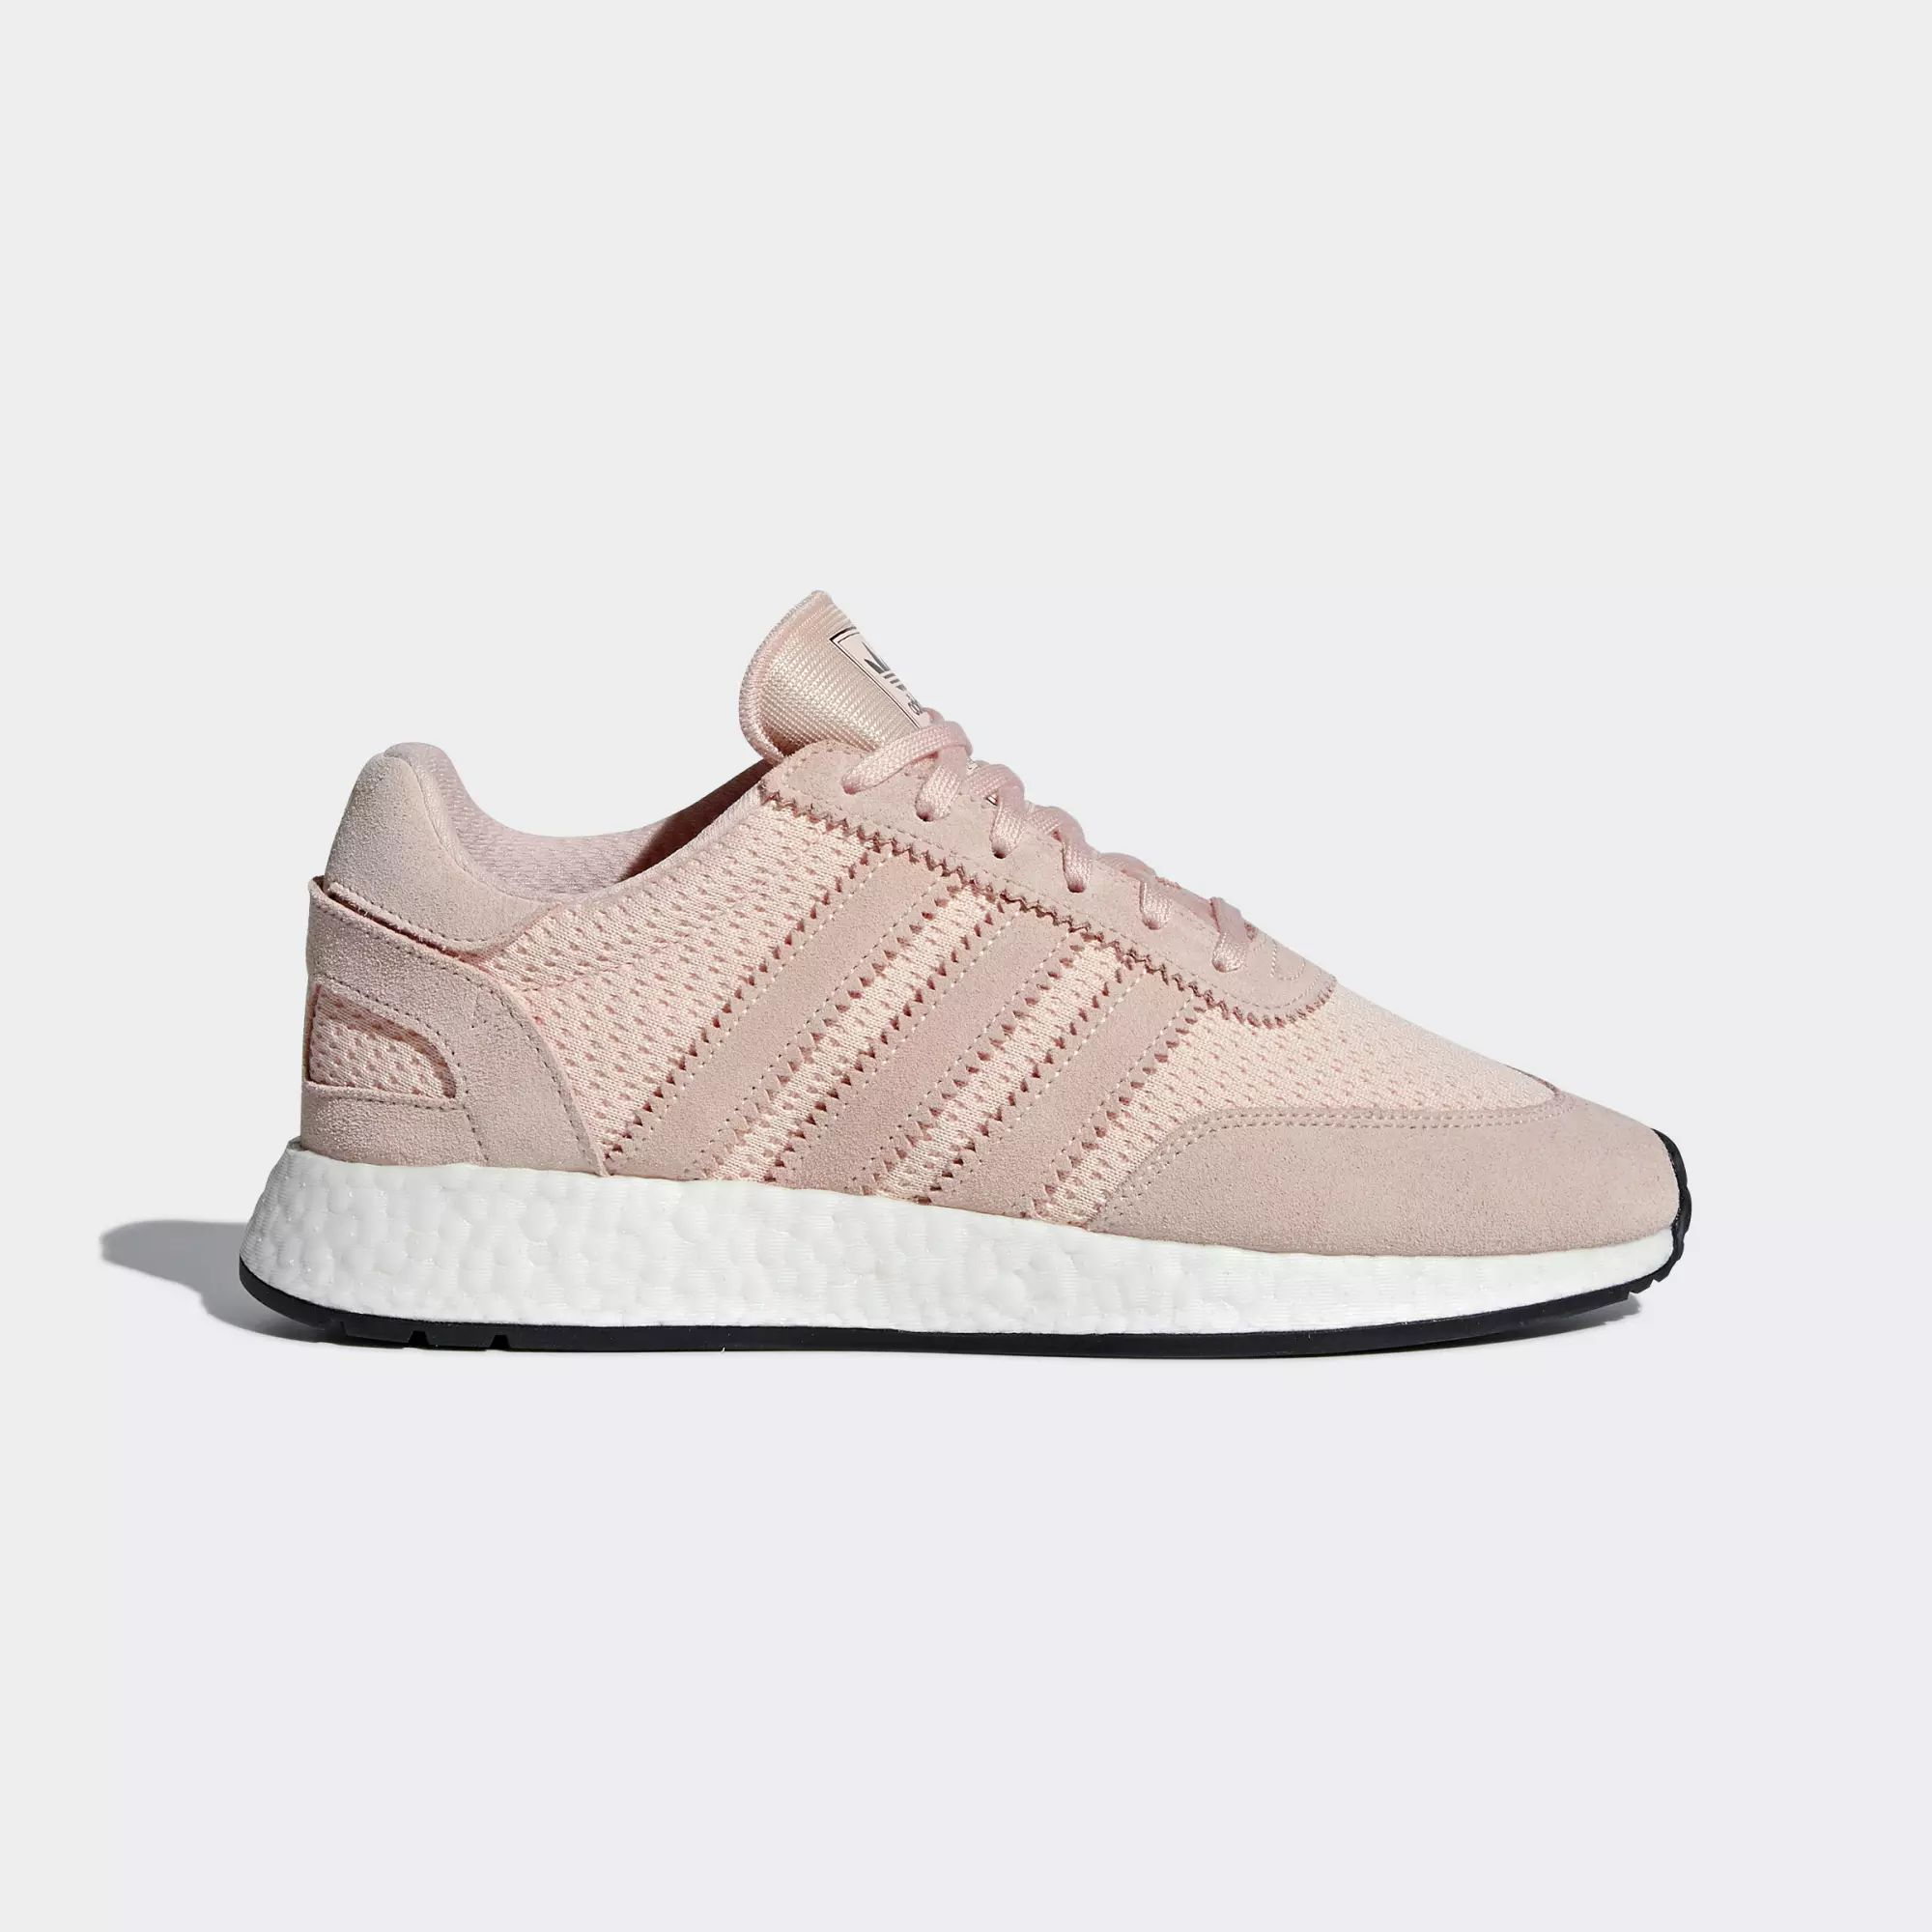 Adidas I-5923 Shoes - Icey Pink / Icey Pink / Core Black